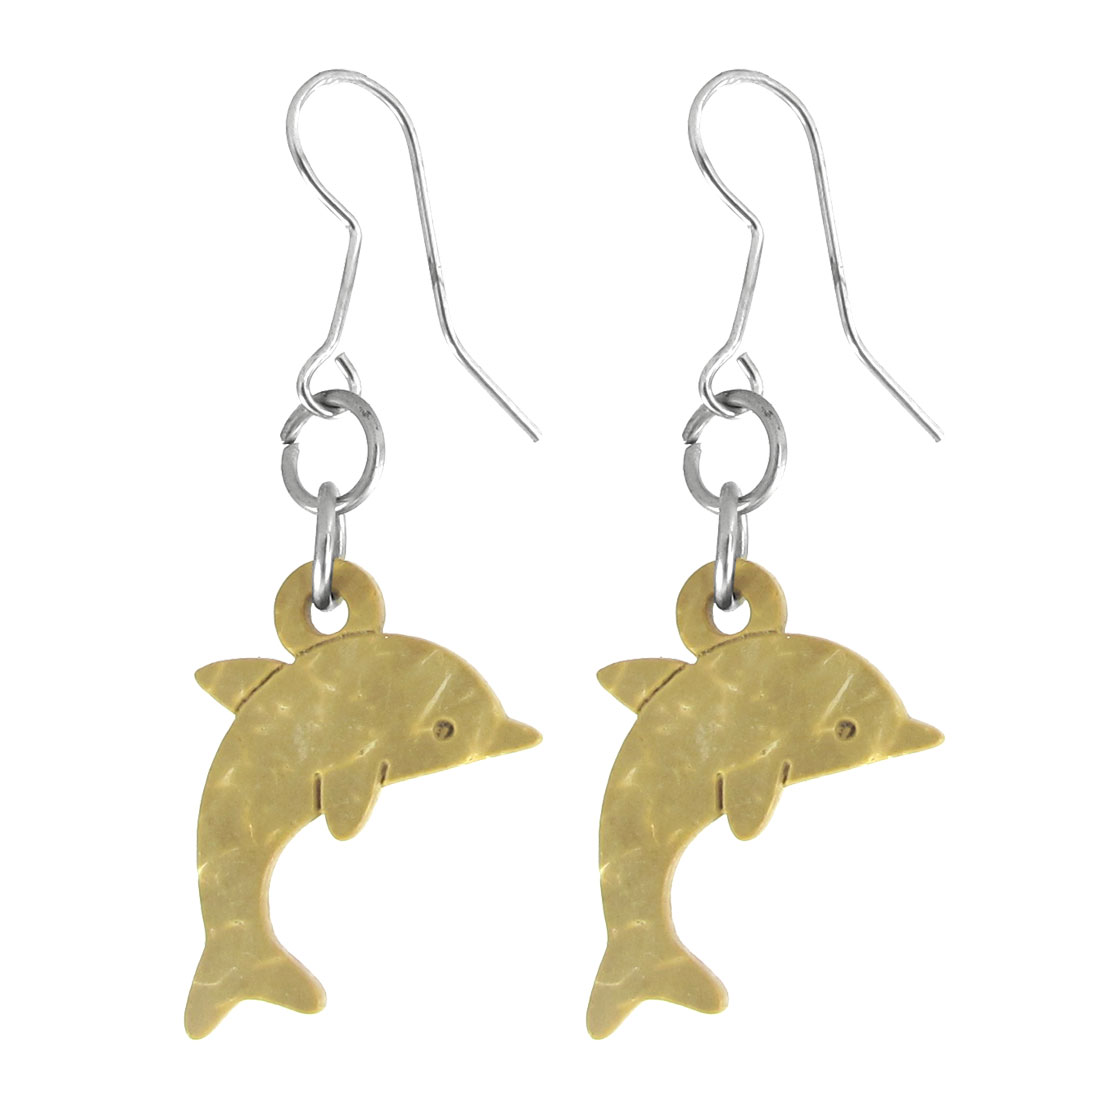 Lady Wooden Dolphin Earbob Fish Hook Earrings Pierced Eardrop Pair